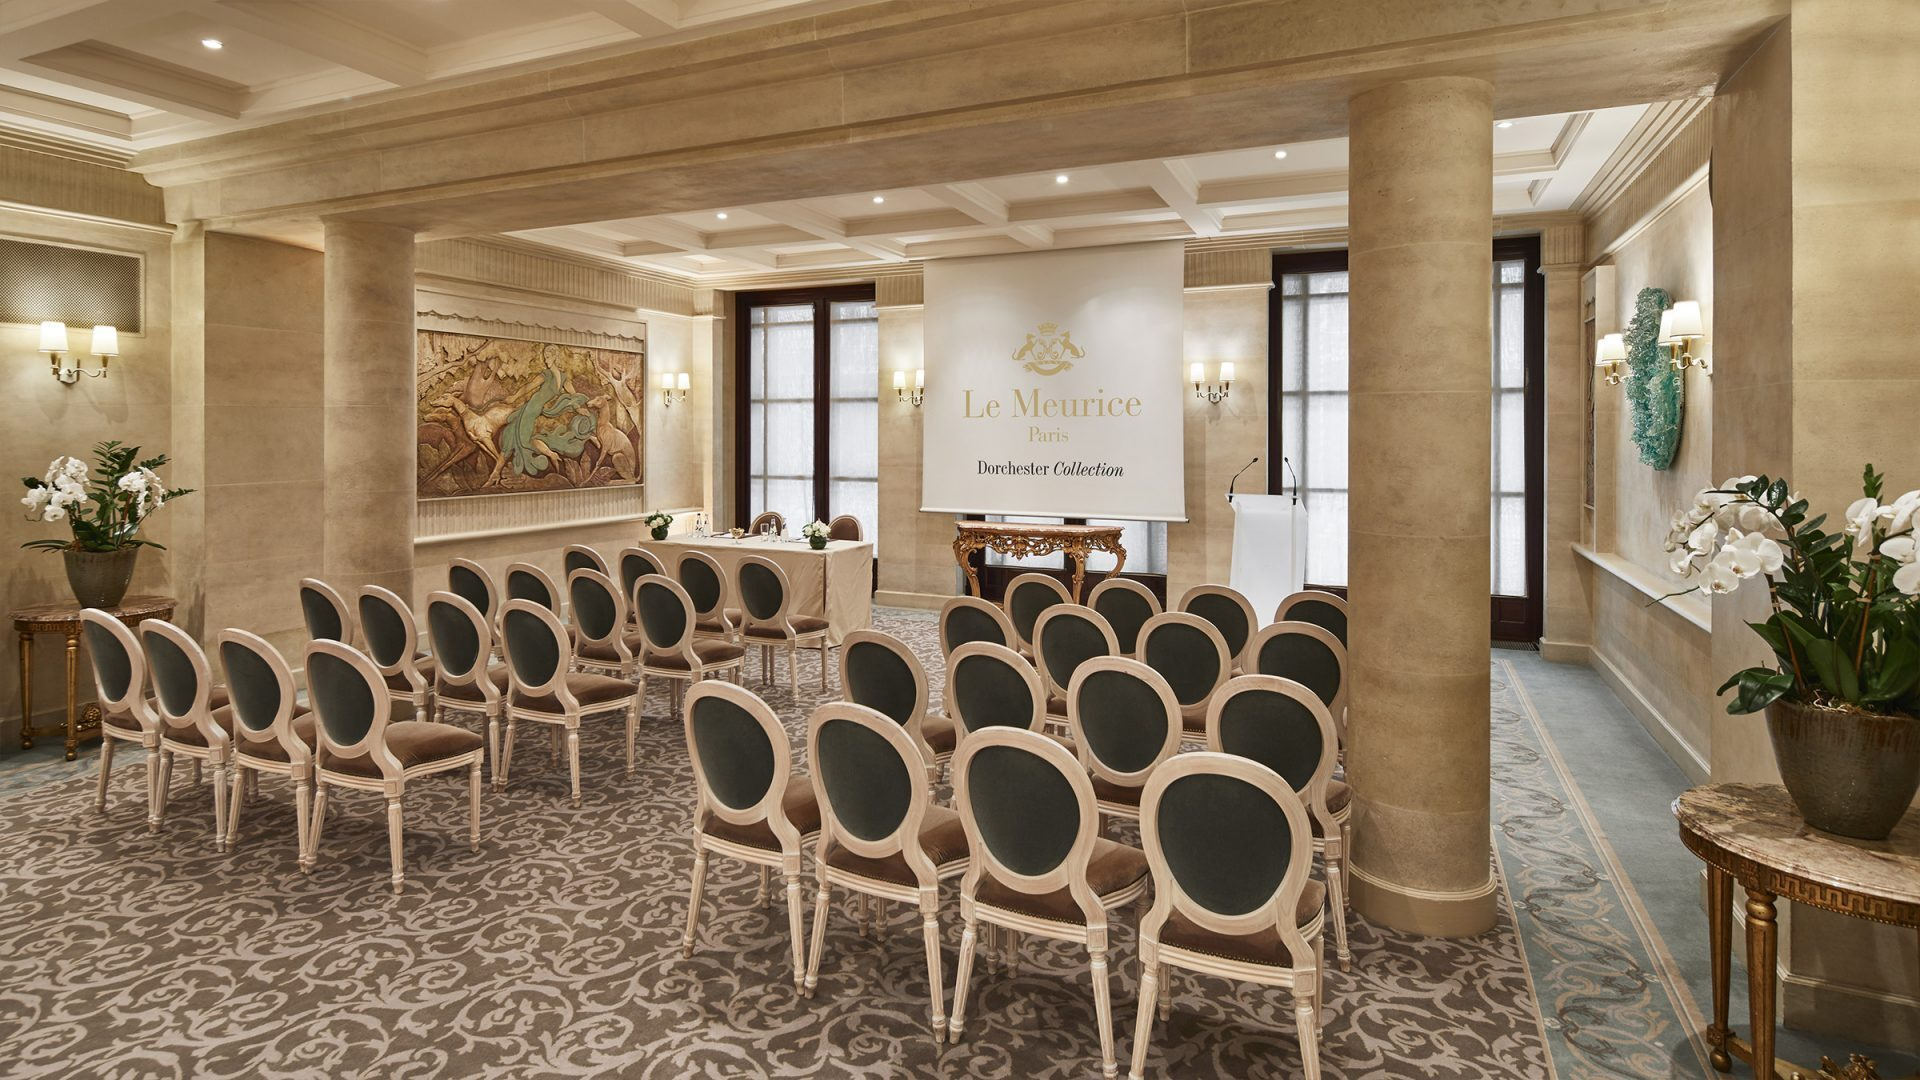 Salon De The A Paris Salon Jeu De Paume Paris Le Meurice Dorchester Collection